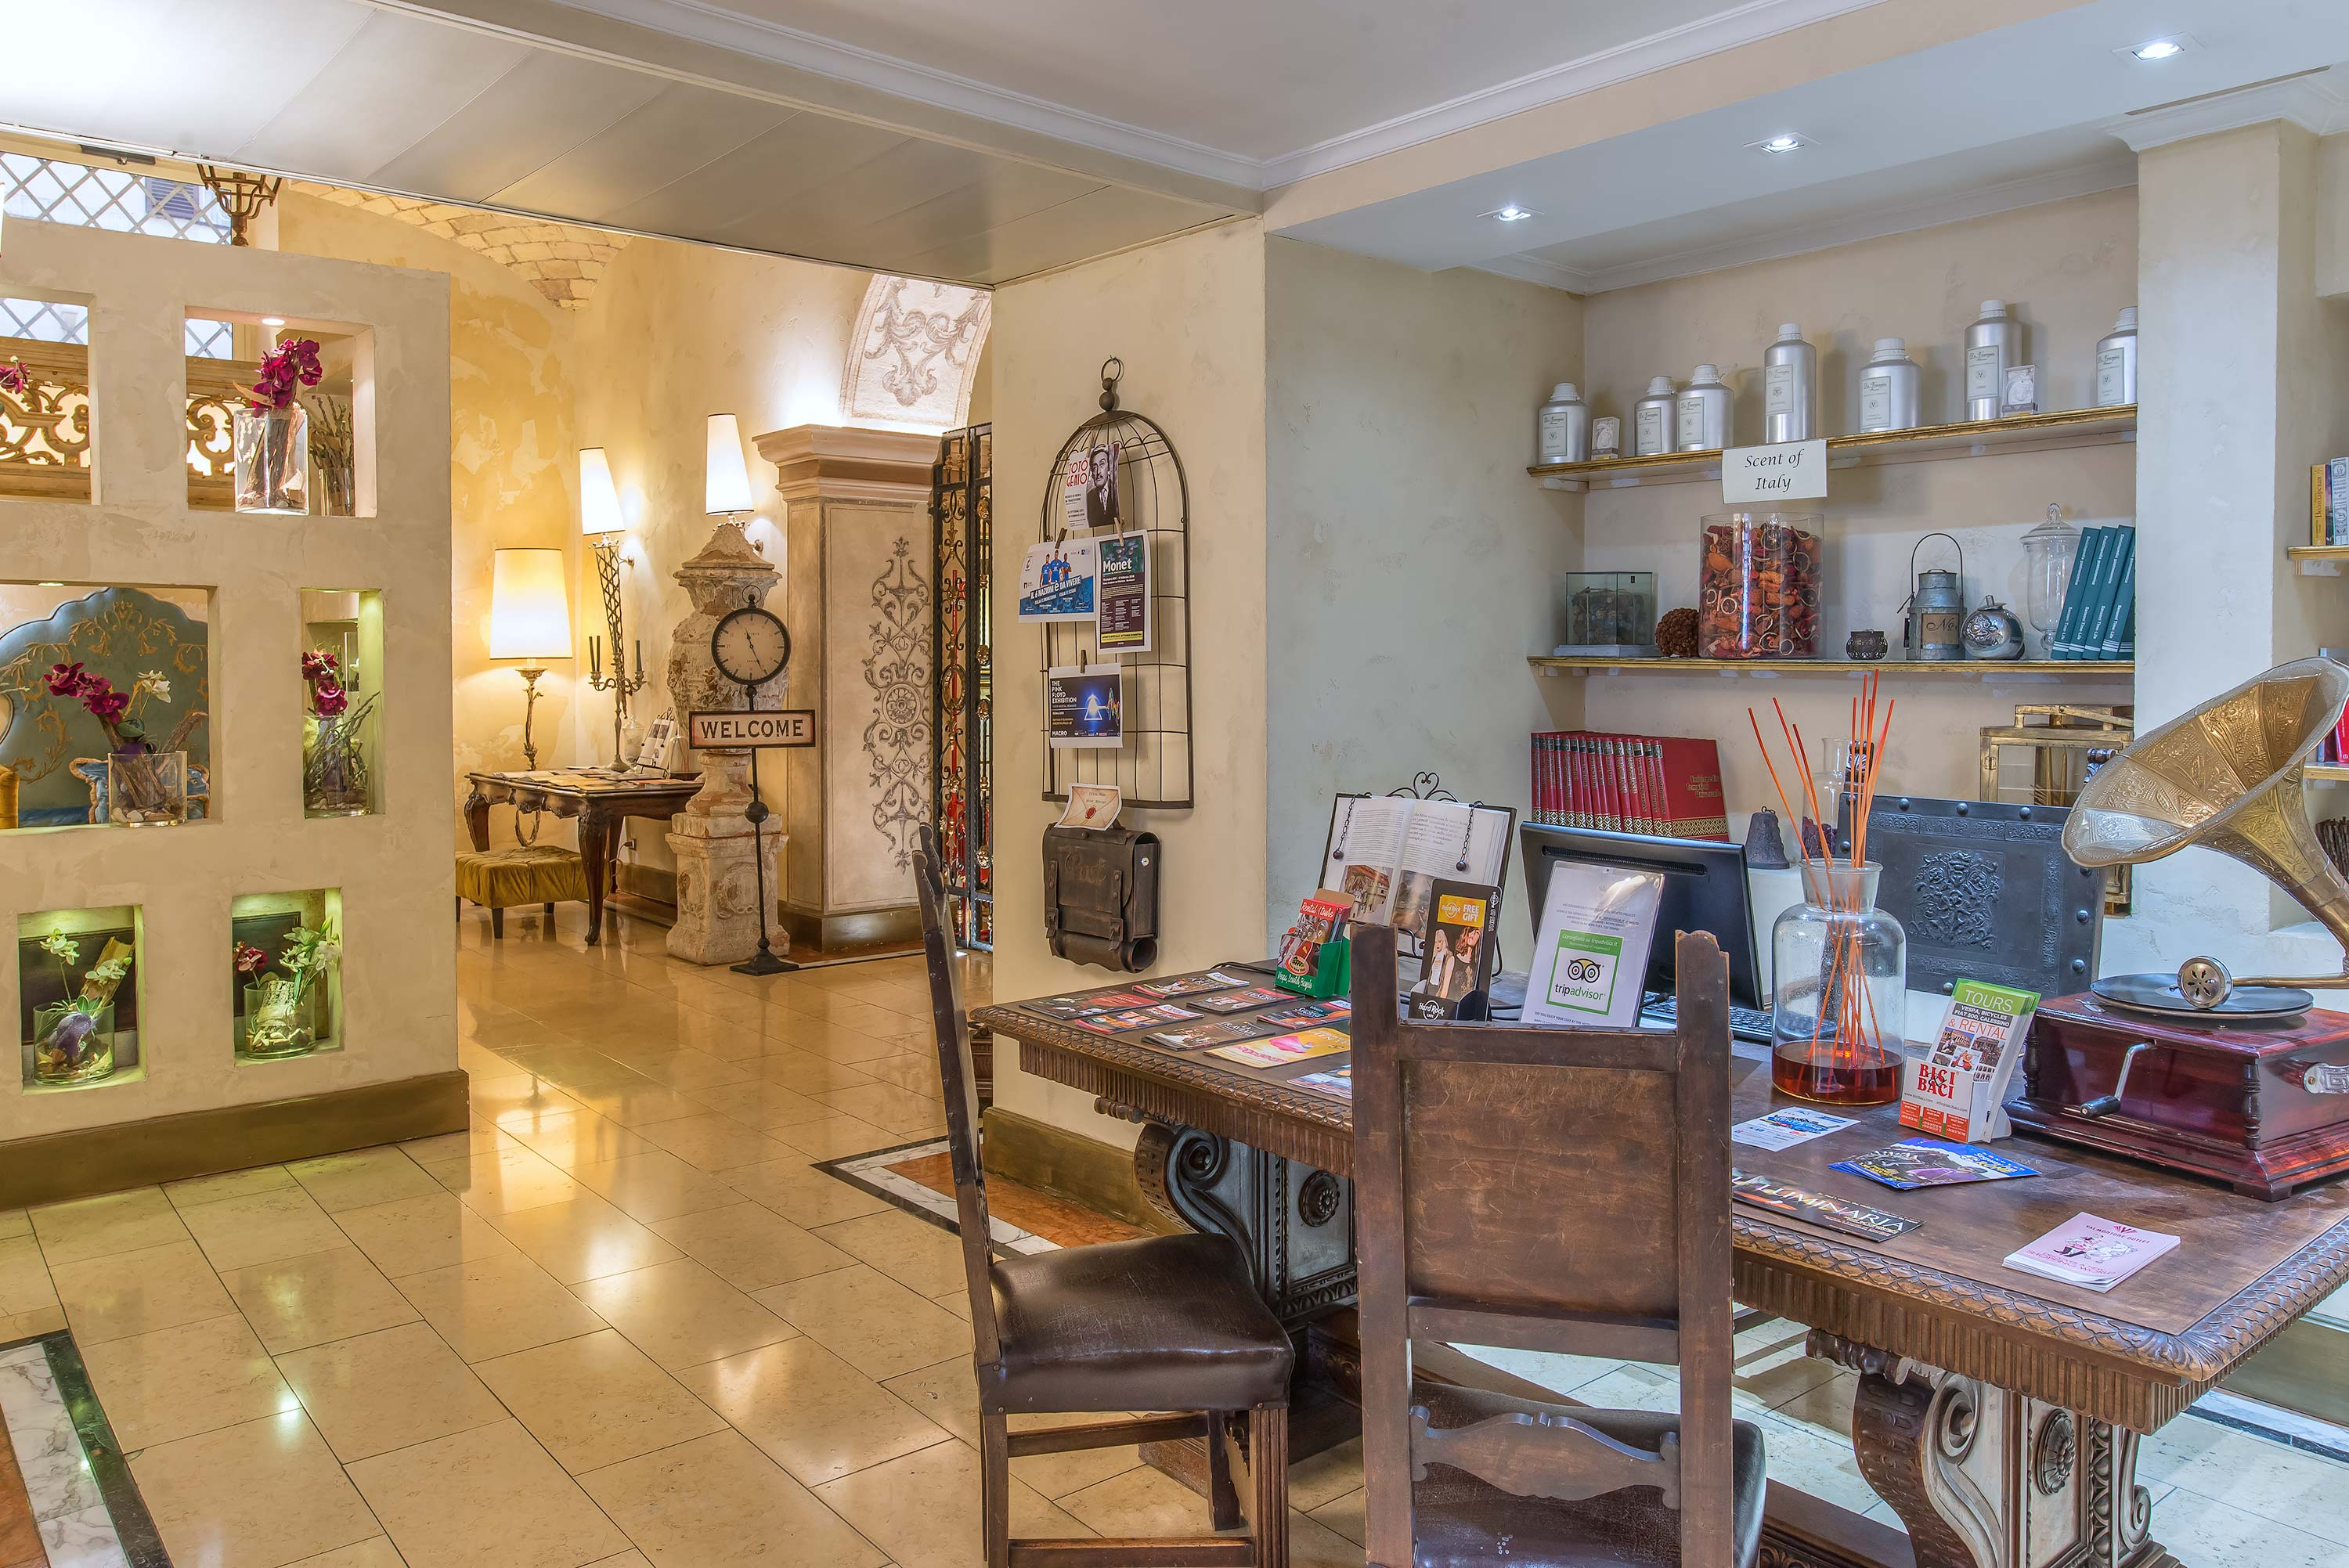 Hotels in Italy: 4* Hotel in Rome's center│Hotel Veneto Palace